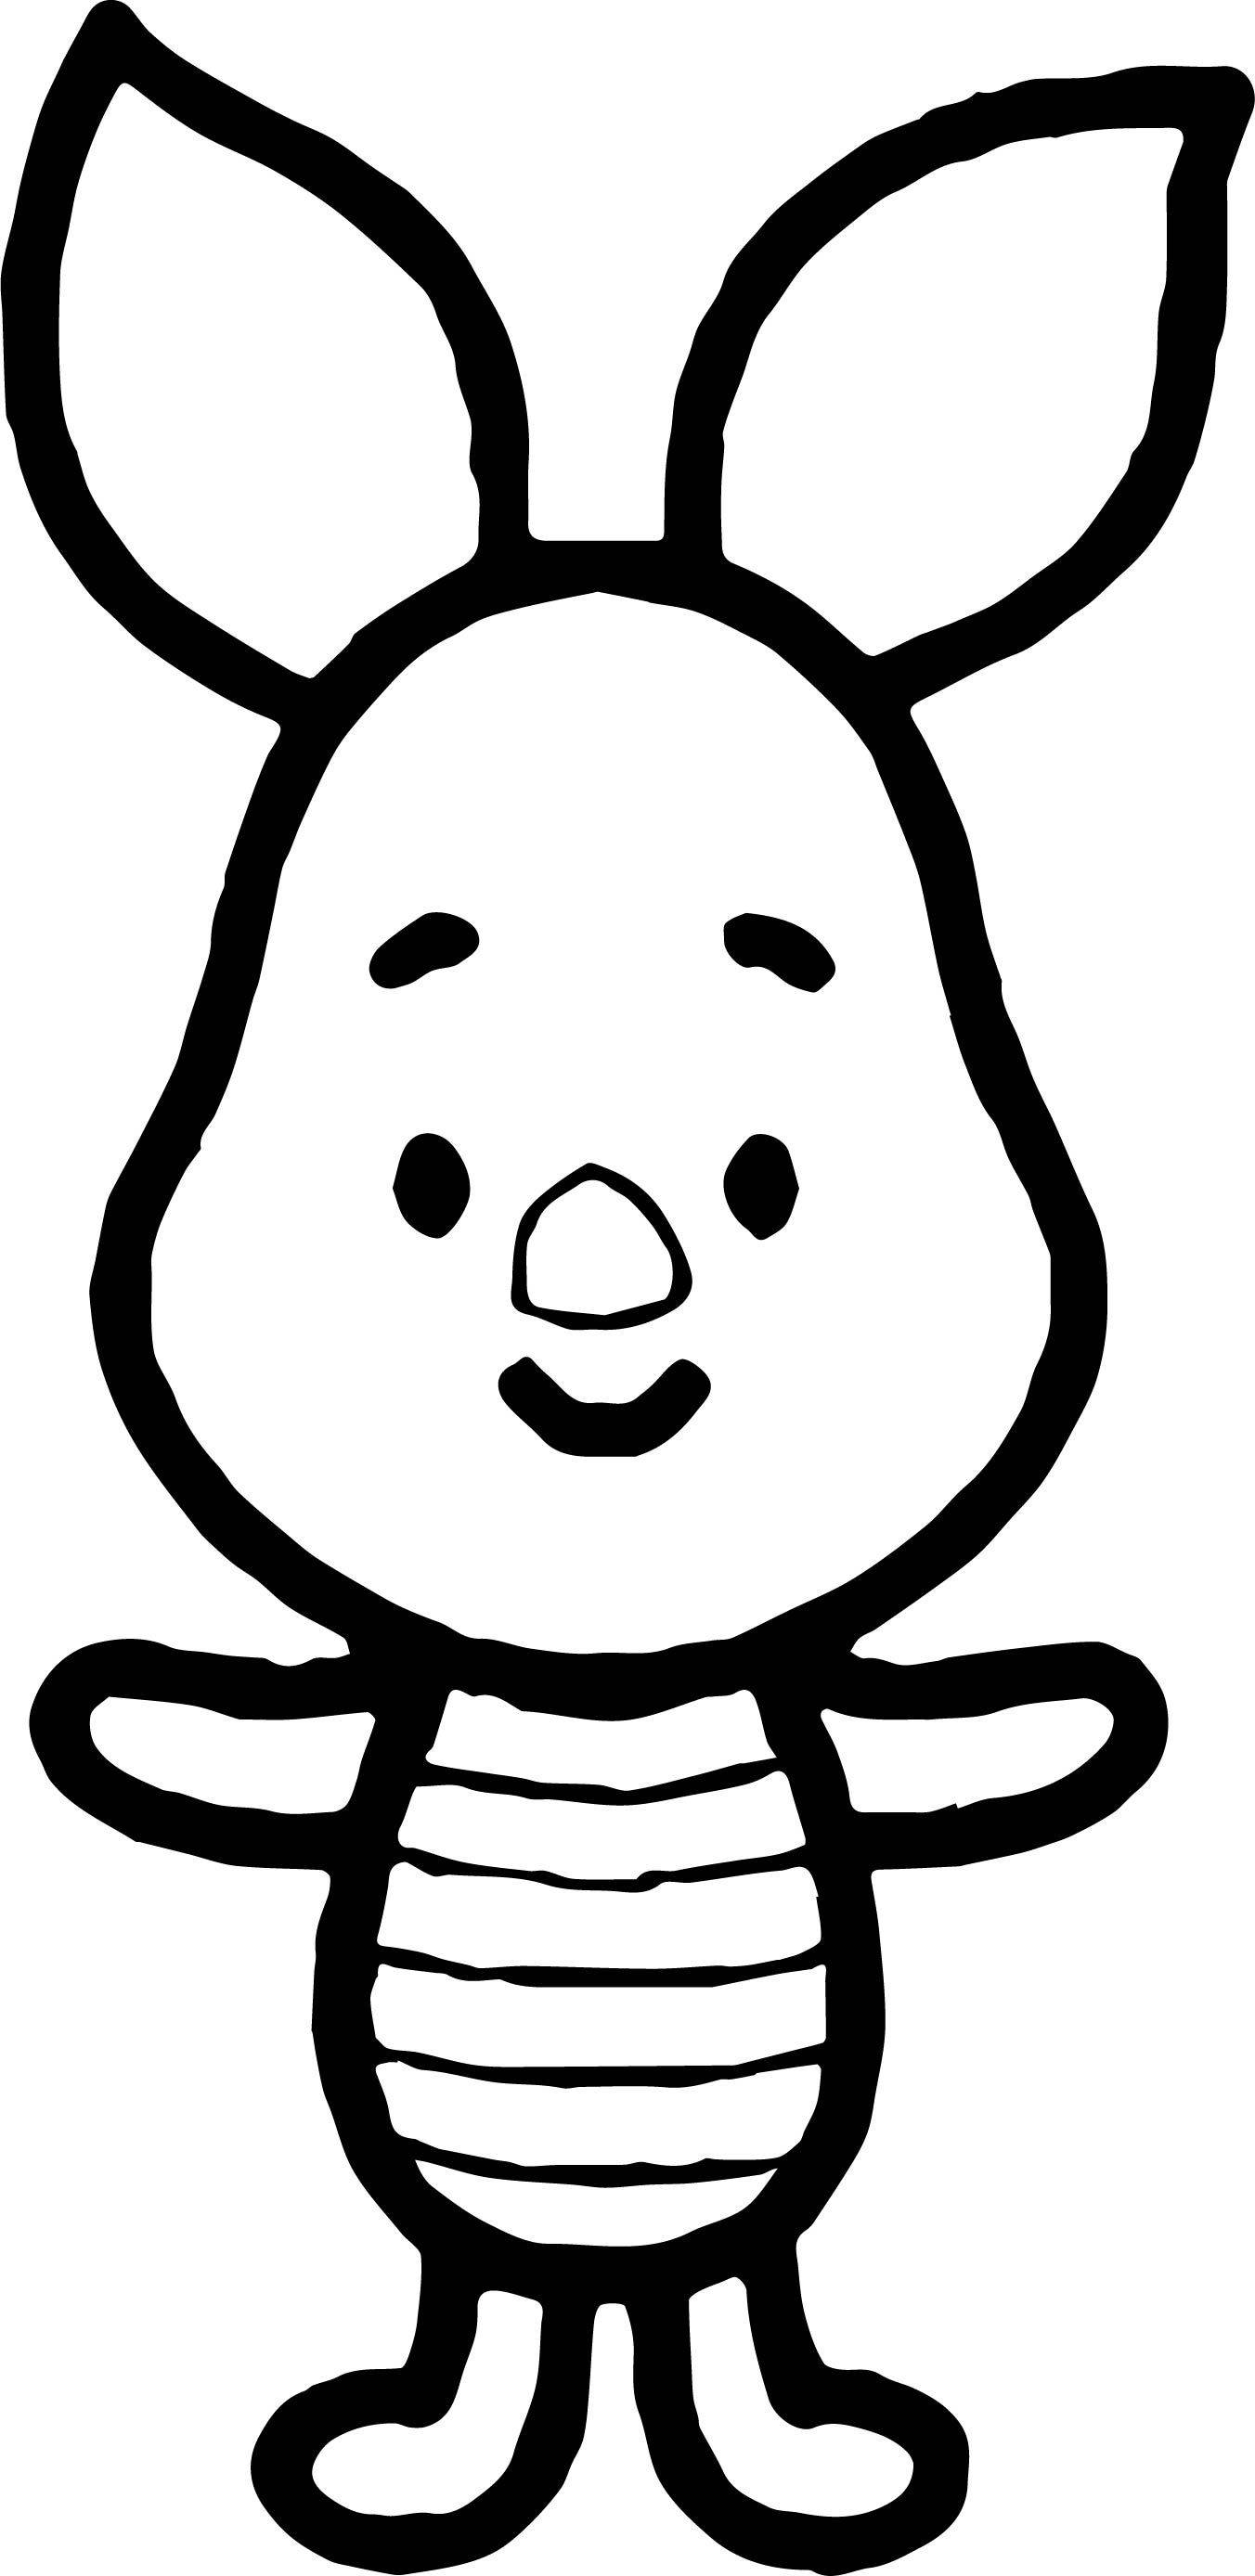 Awesome Piglet Cute Coloring Page Cute Coloring Pages Batman Coloring Pages Dinosaur Coloring Pages